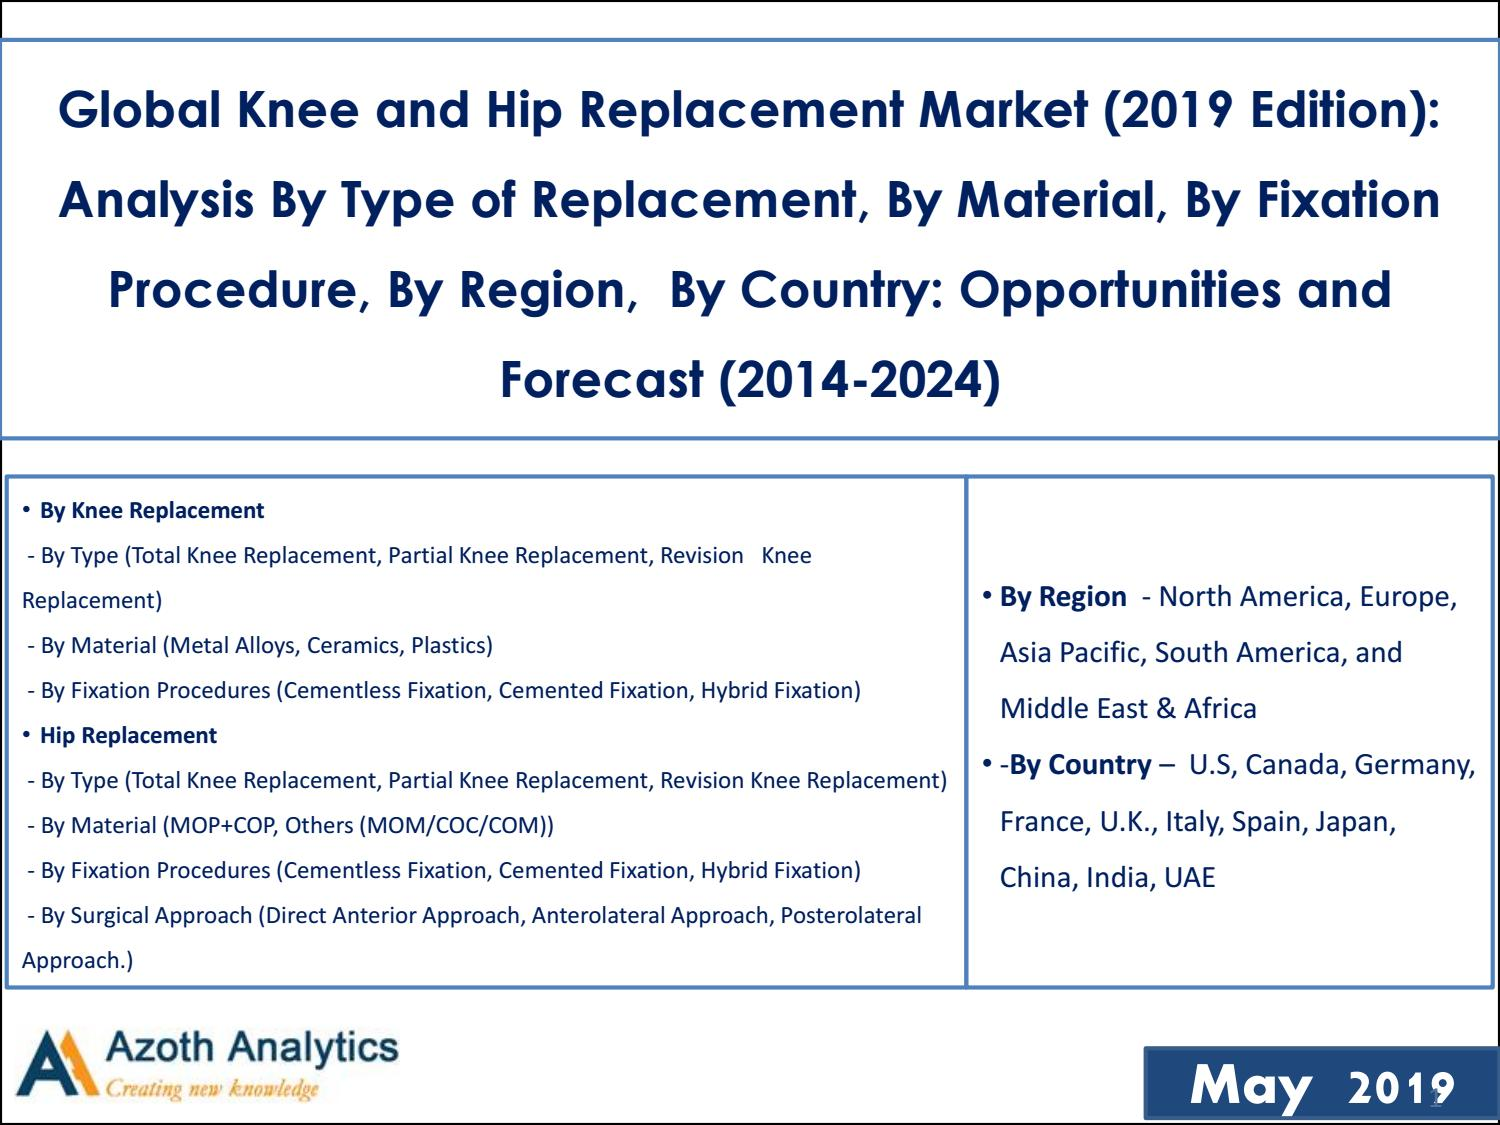 Global Knee and Hip Replacement Market by Azoth Analytics